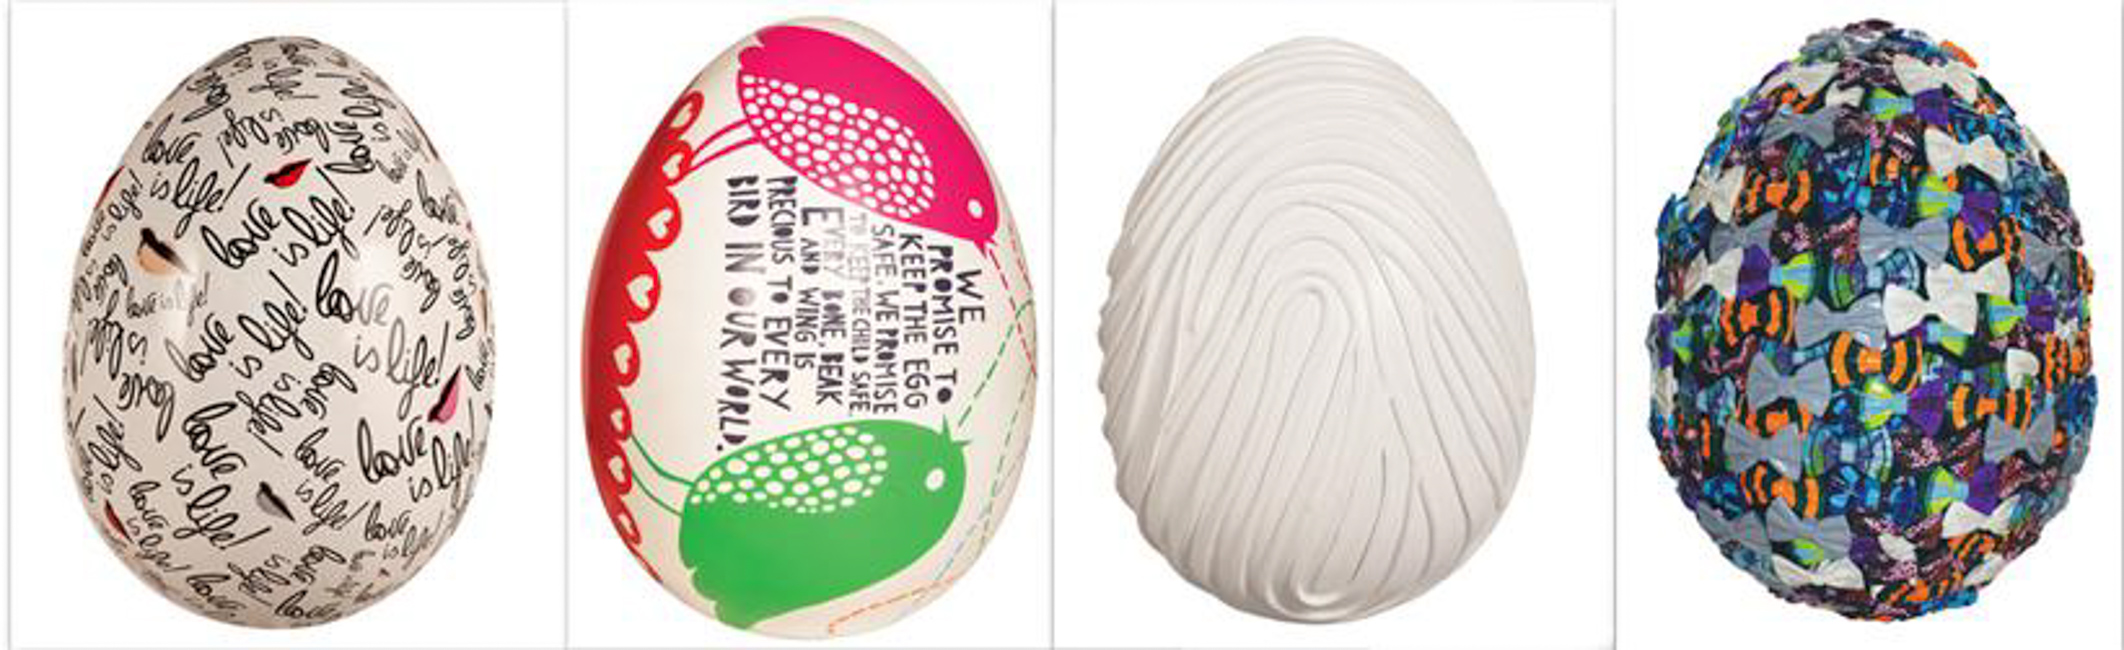 Eggs by Diane von Furstenberg, Rob Ryan, Marc Quinn, Tommy Hilfiger